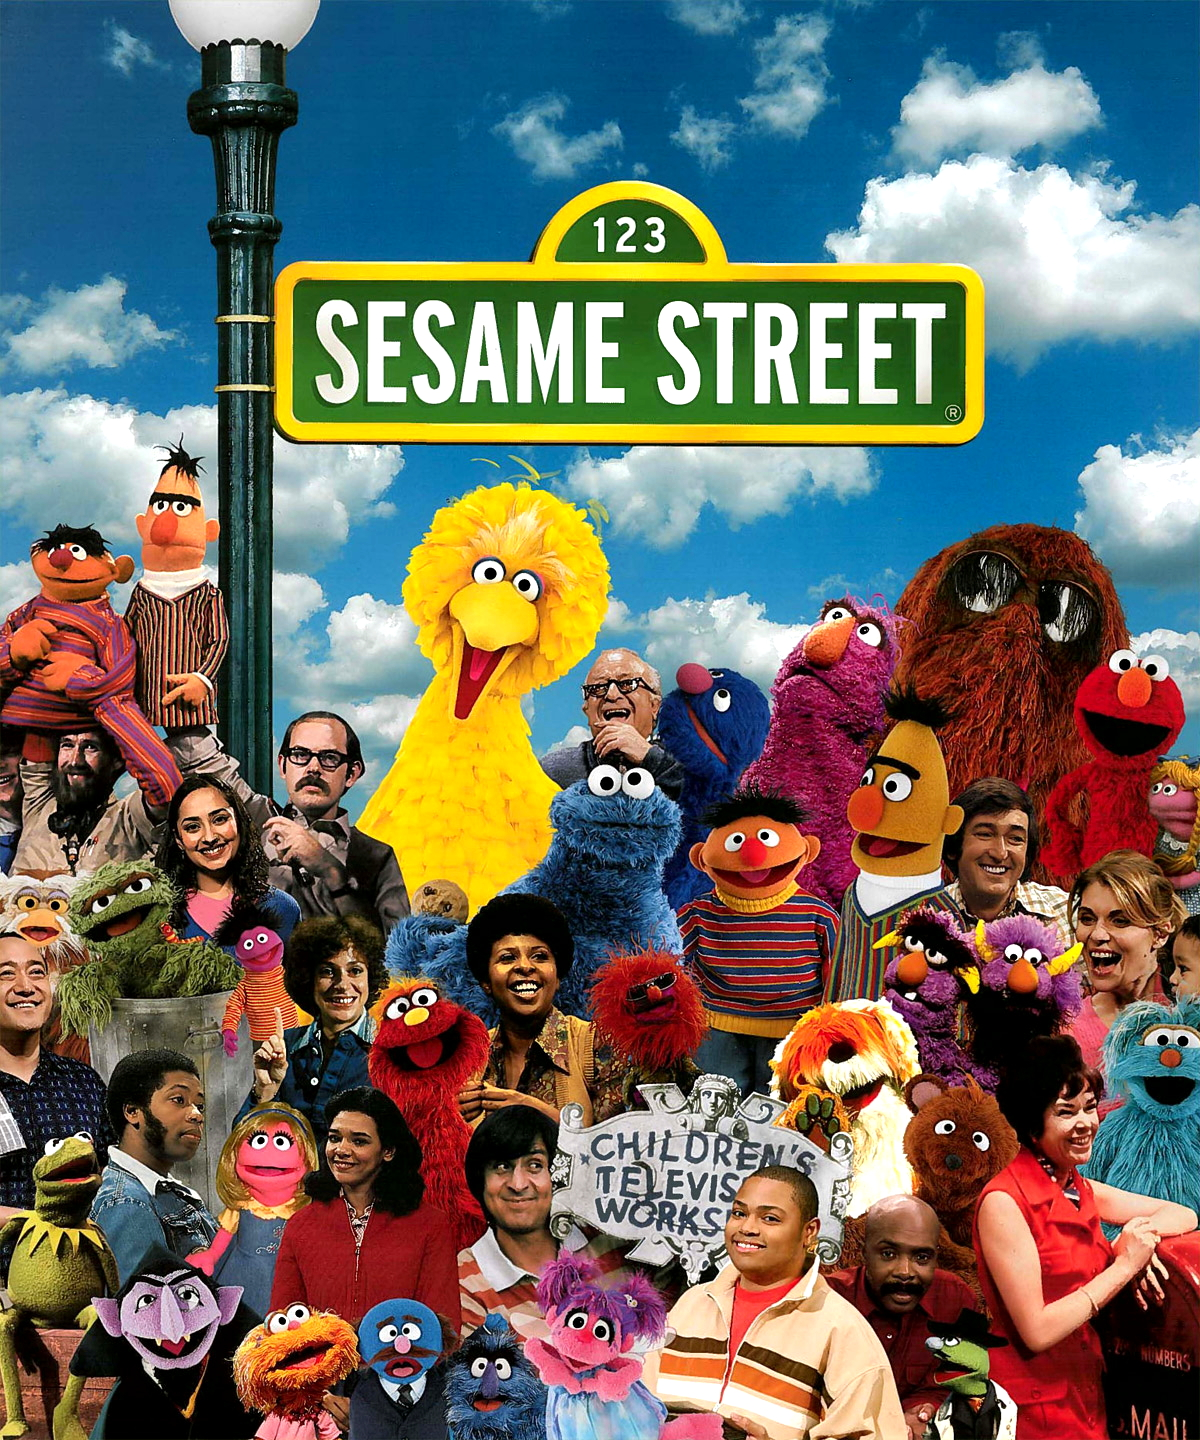 sesame street Grown-ups hold the power to help lessen the effects of traumatic experiences.